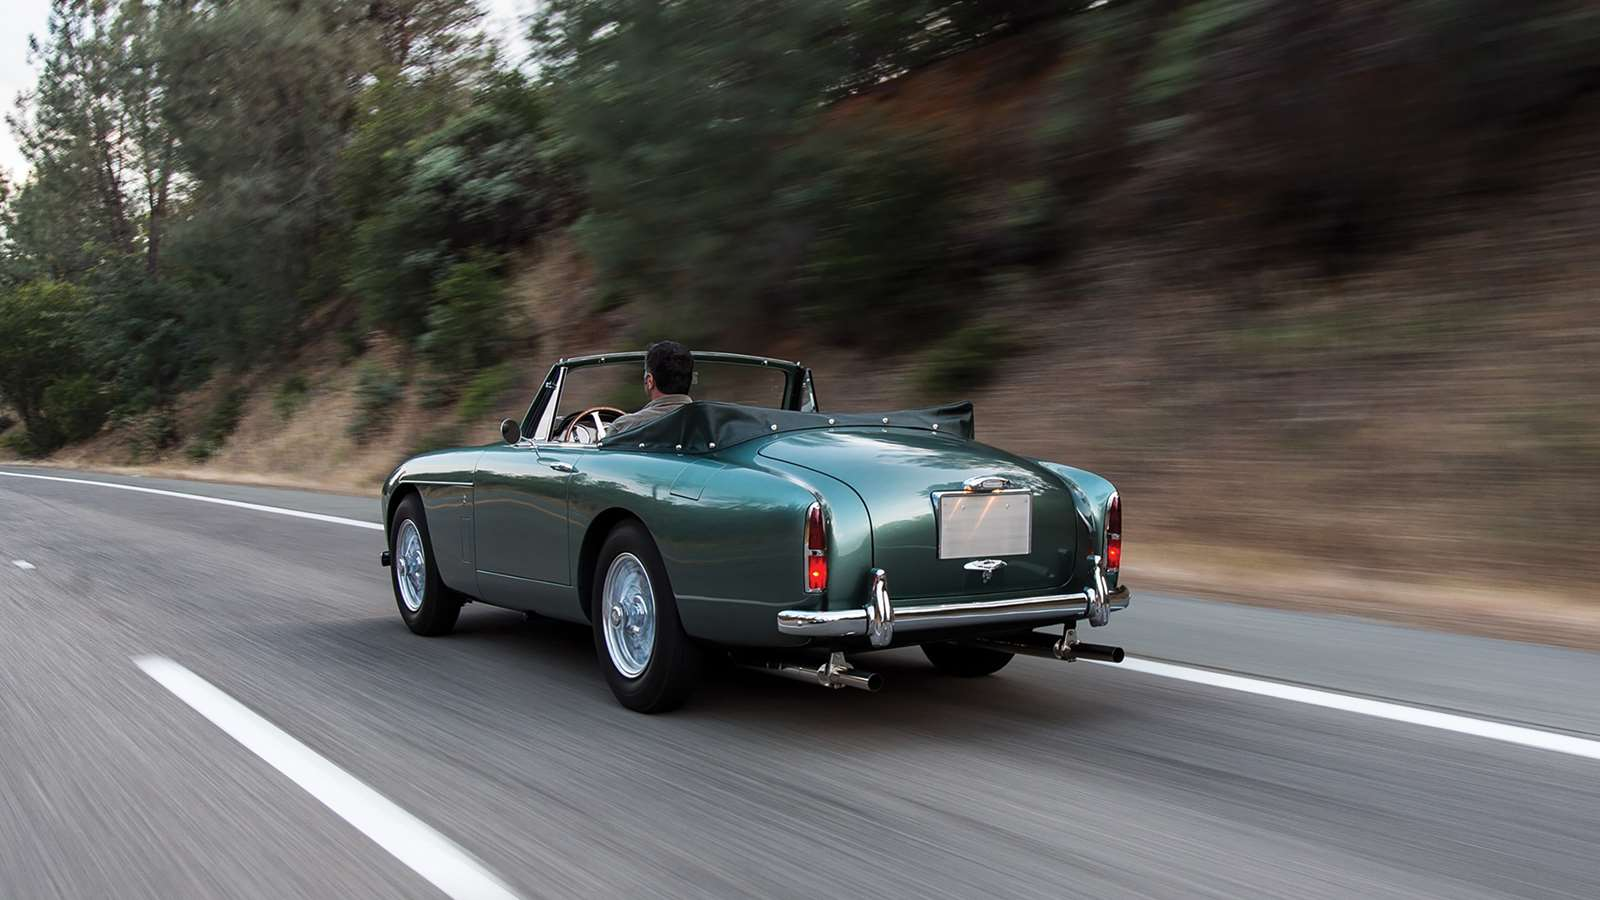 The Db2 4 Mkiii Drophead Coupe Is Still The Ultimate Convertible Aston